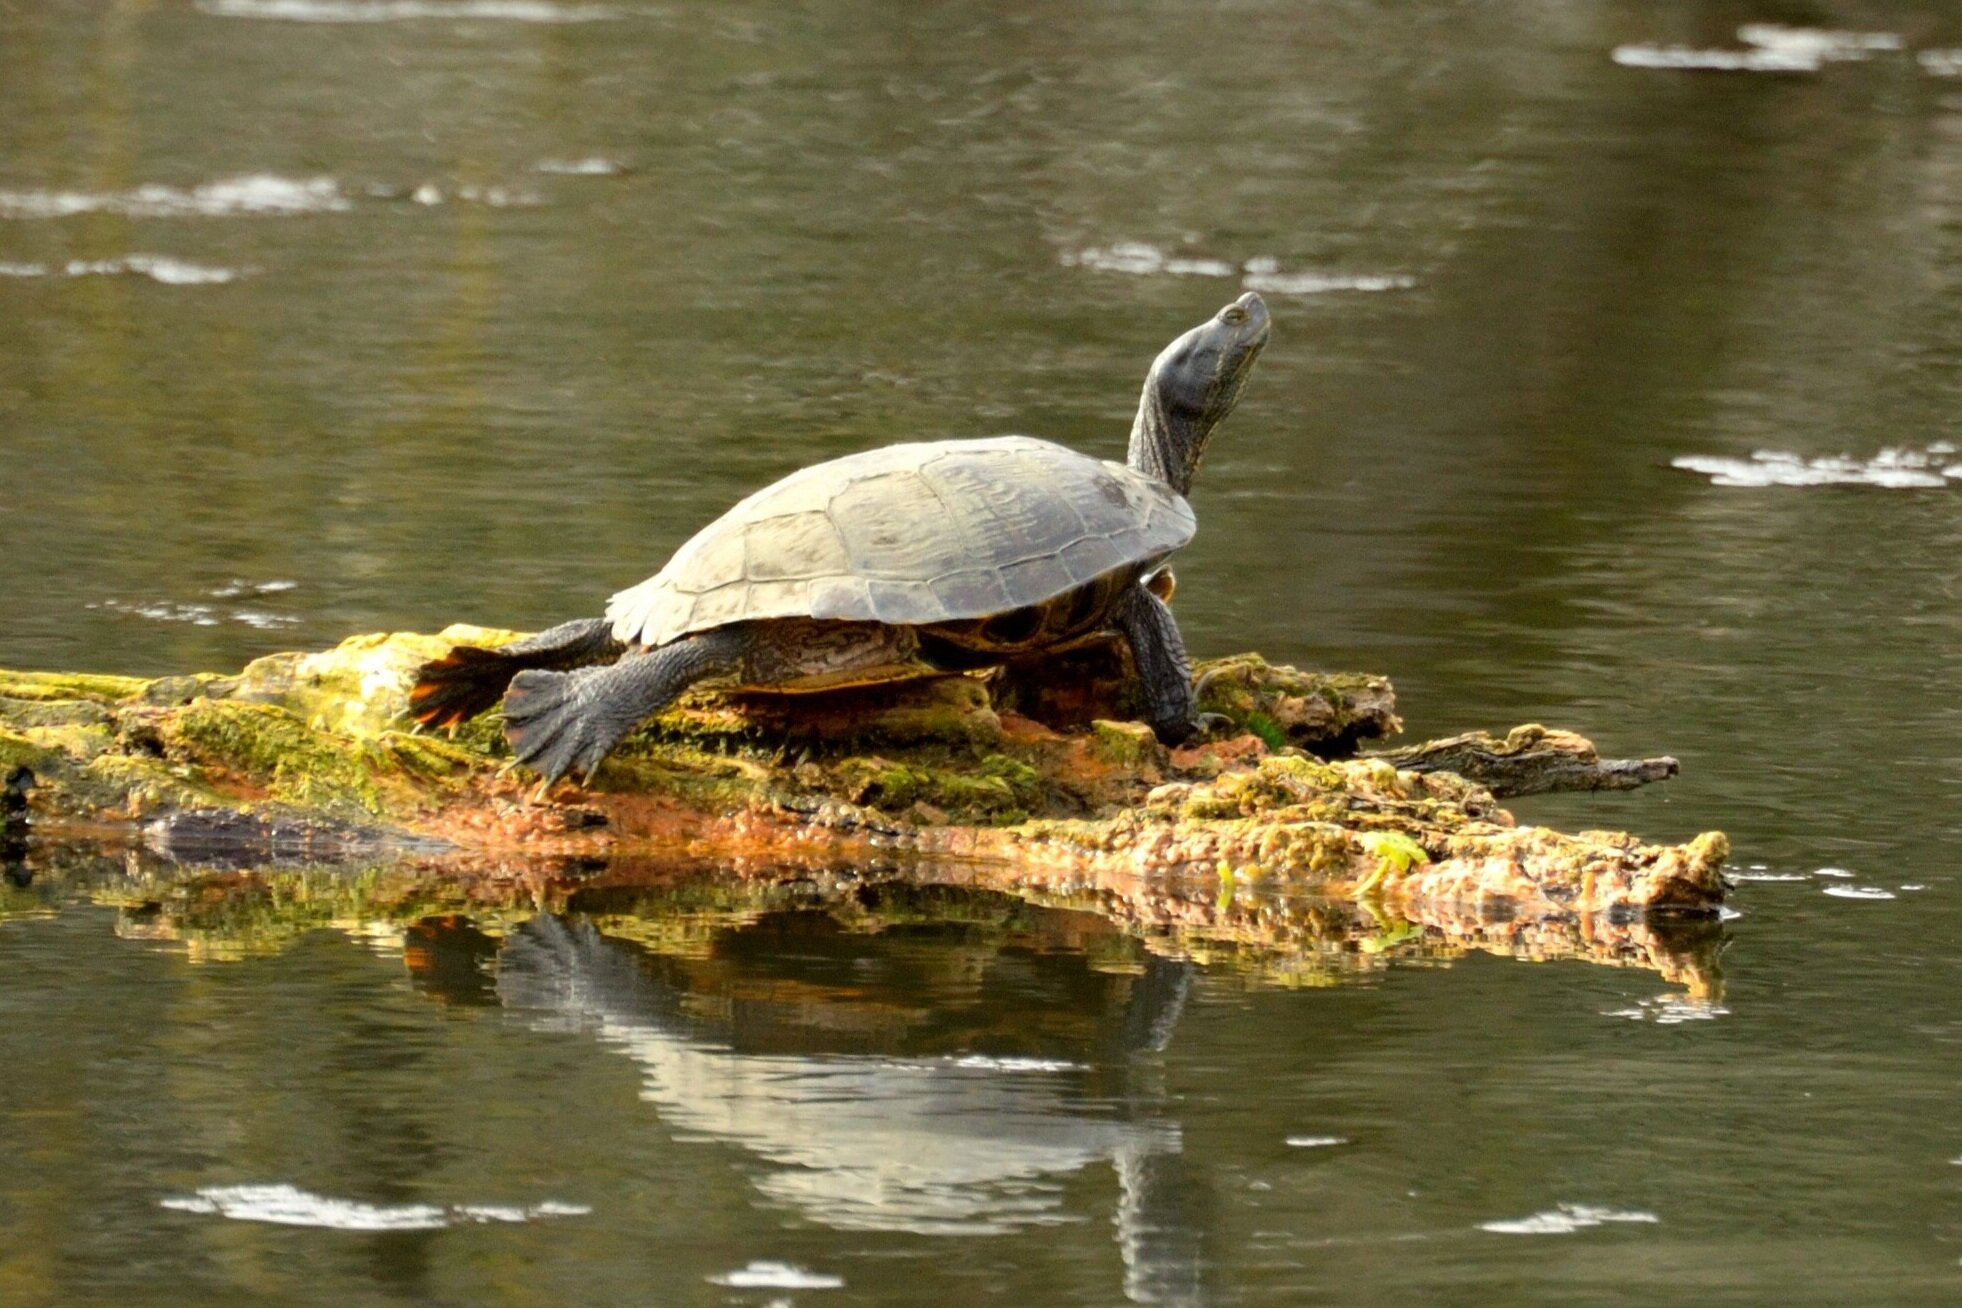 Western Pond Turtle photo (and banner photo) by Frank Lospalluto